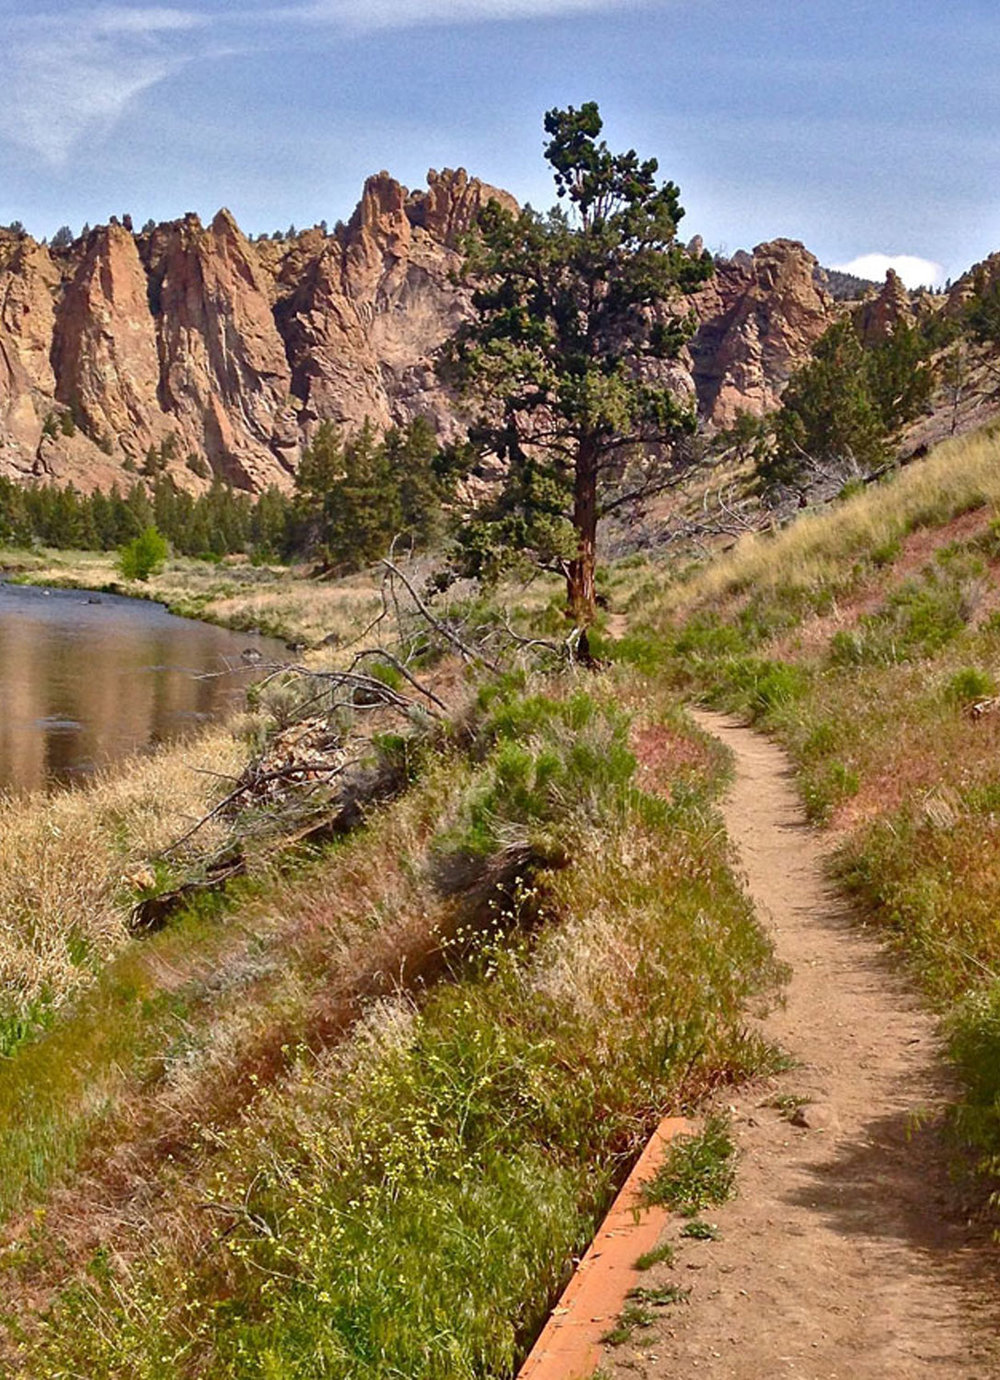 Homestead Trail along the Crooked River towards the Monument area at Smith Rock State Park.